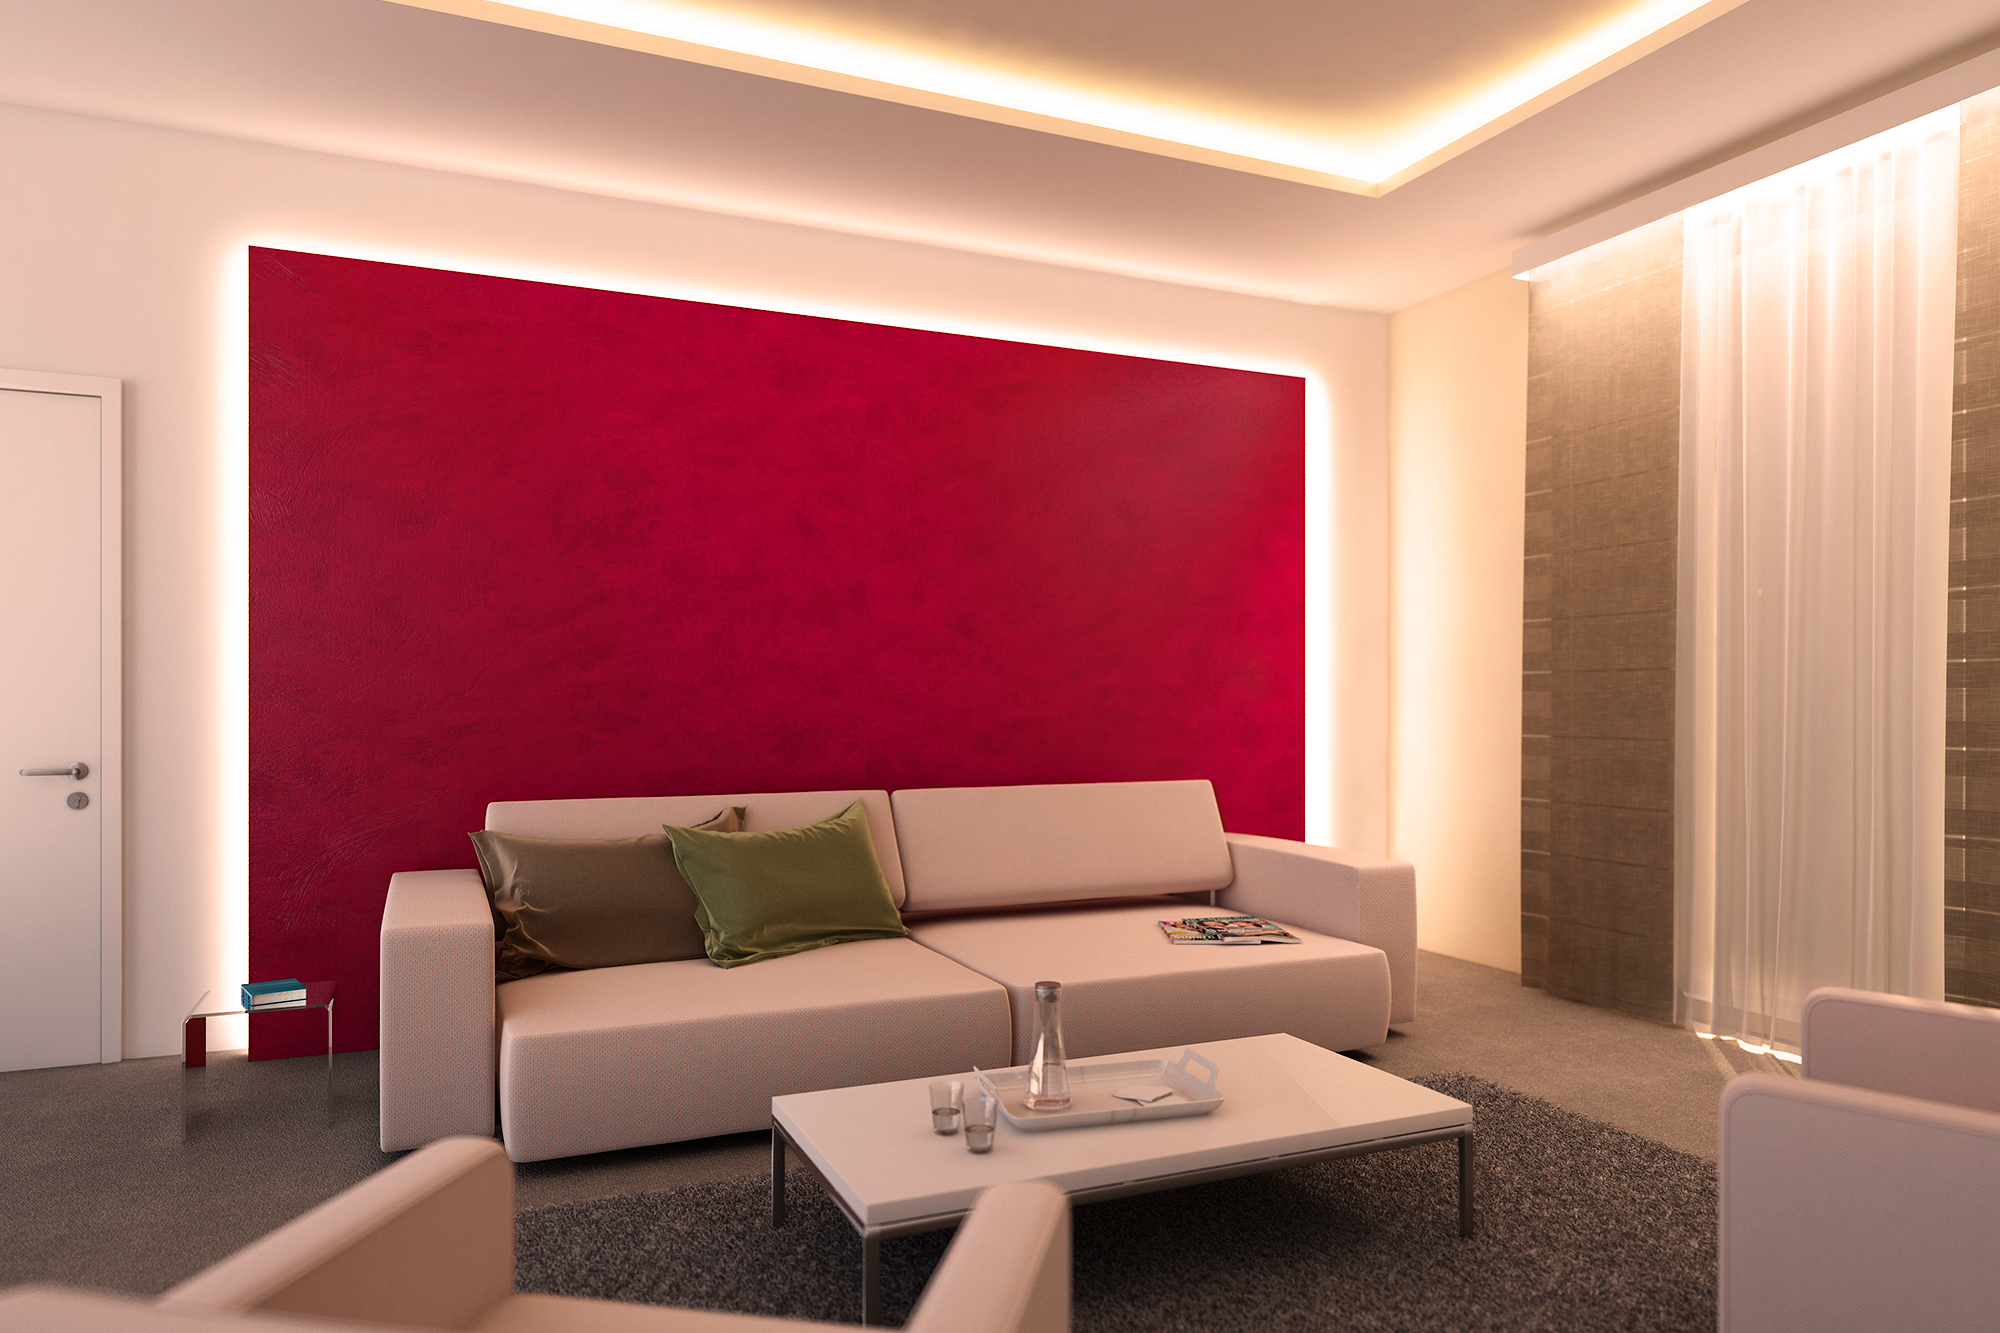 Full Size of Led Beleuchtung Wohnzimmer Wand Led Beleuchtung Wohnzimmer Planen Led Streifen Beleuchtung Wohnzimmer Wohnzimmer Mit Led Beleuchtung Wohnzimmer Led Beleuchtung Wohnzimmer